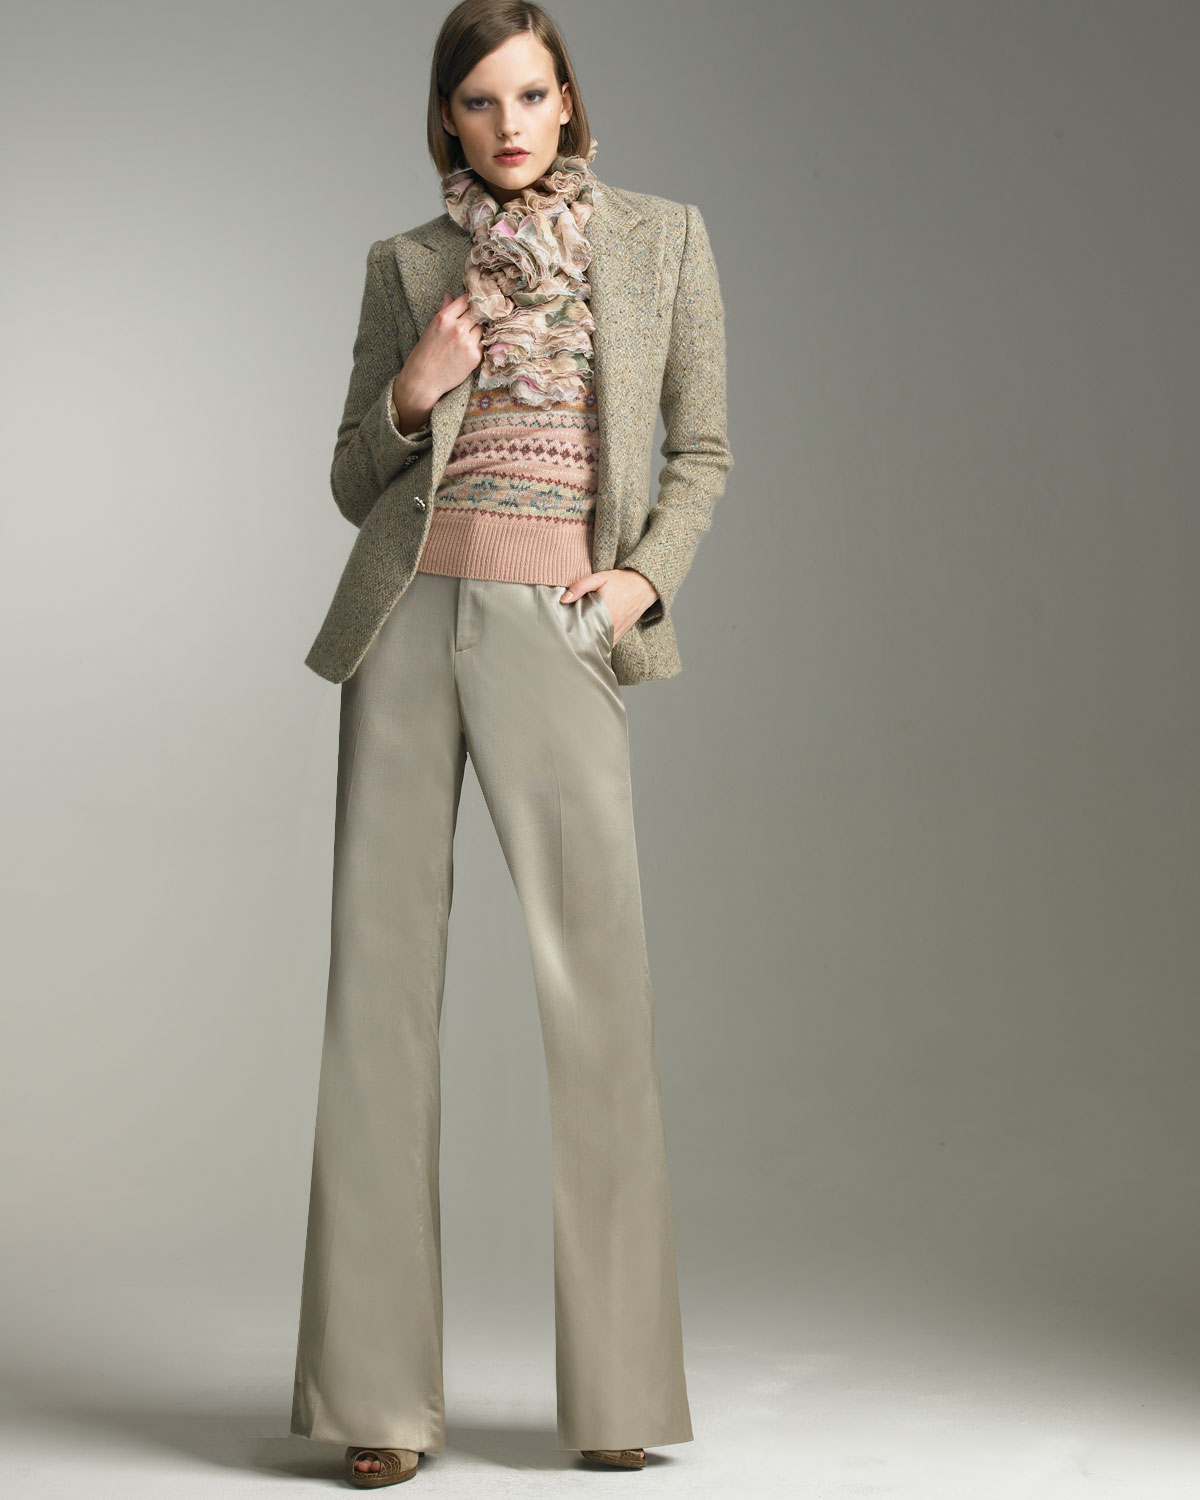 Pauline Jacket & Courtney Satin Pants - Ralph Lauren - Bergdorf Goodman :  long sleeve bergdorf goodman satin tweed